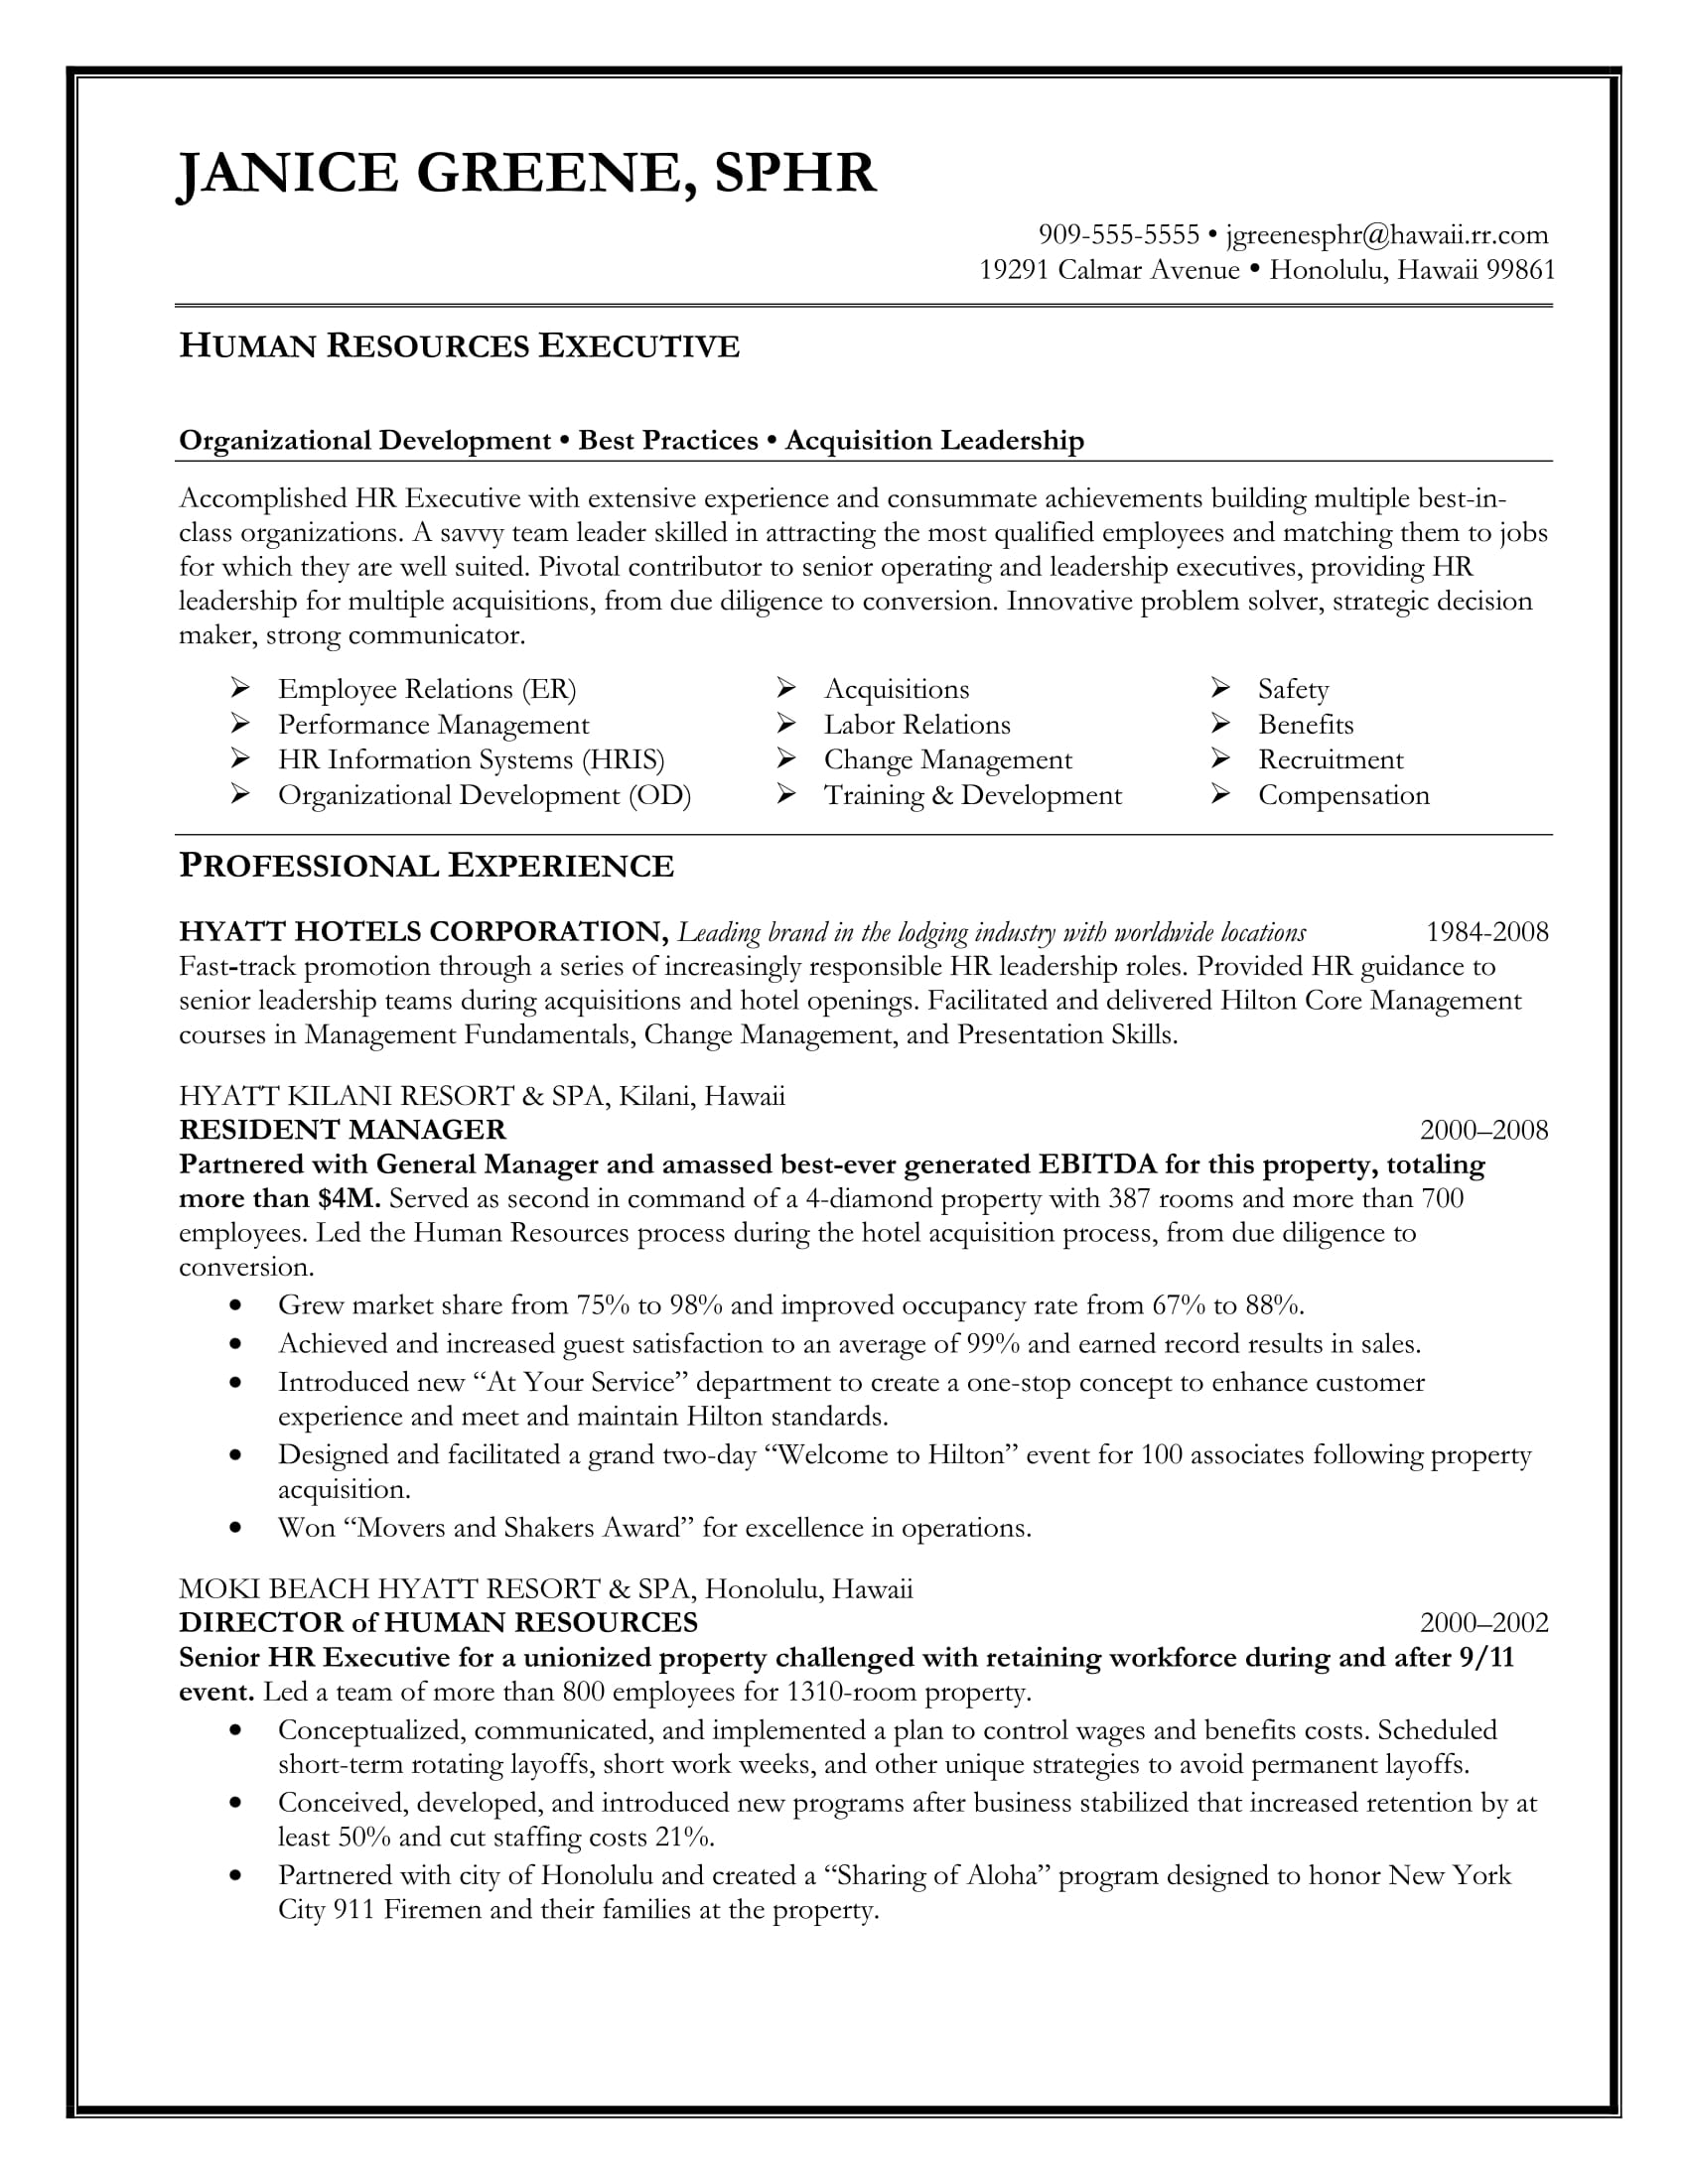 best sample executive resume templates wisestep format template free ats scan stanford Resume Executive Resume Format